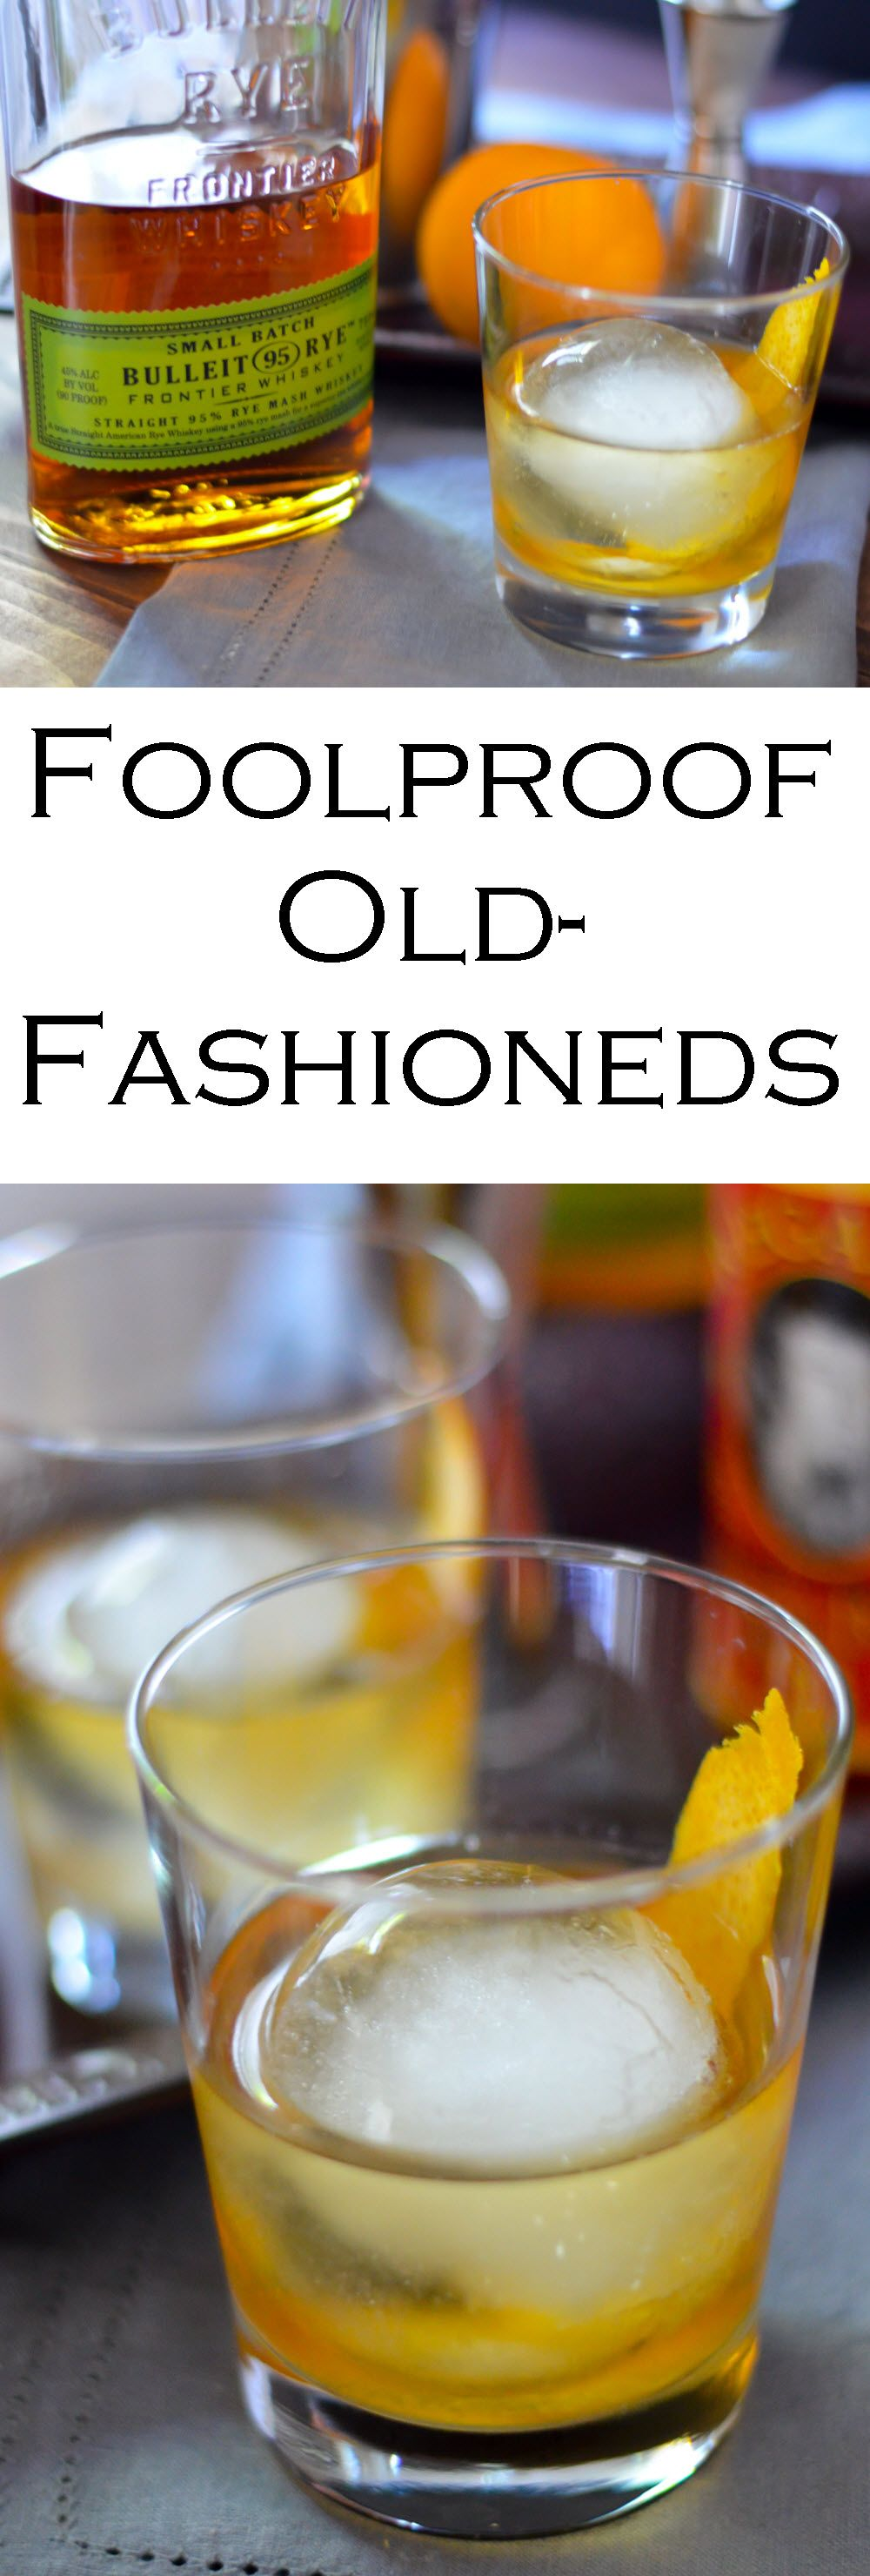 Foolproof Classic Old Fashioned Cocktails Recipe Easy